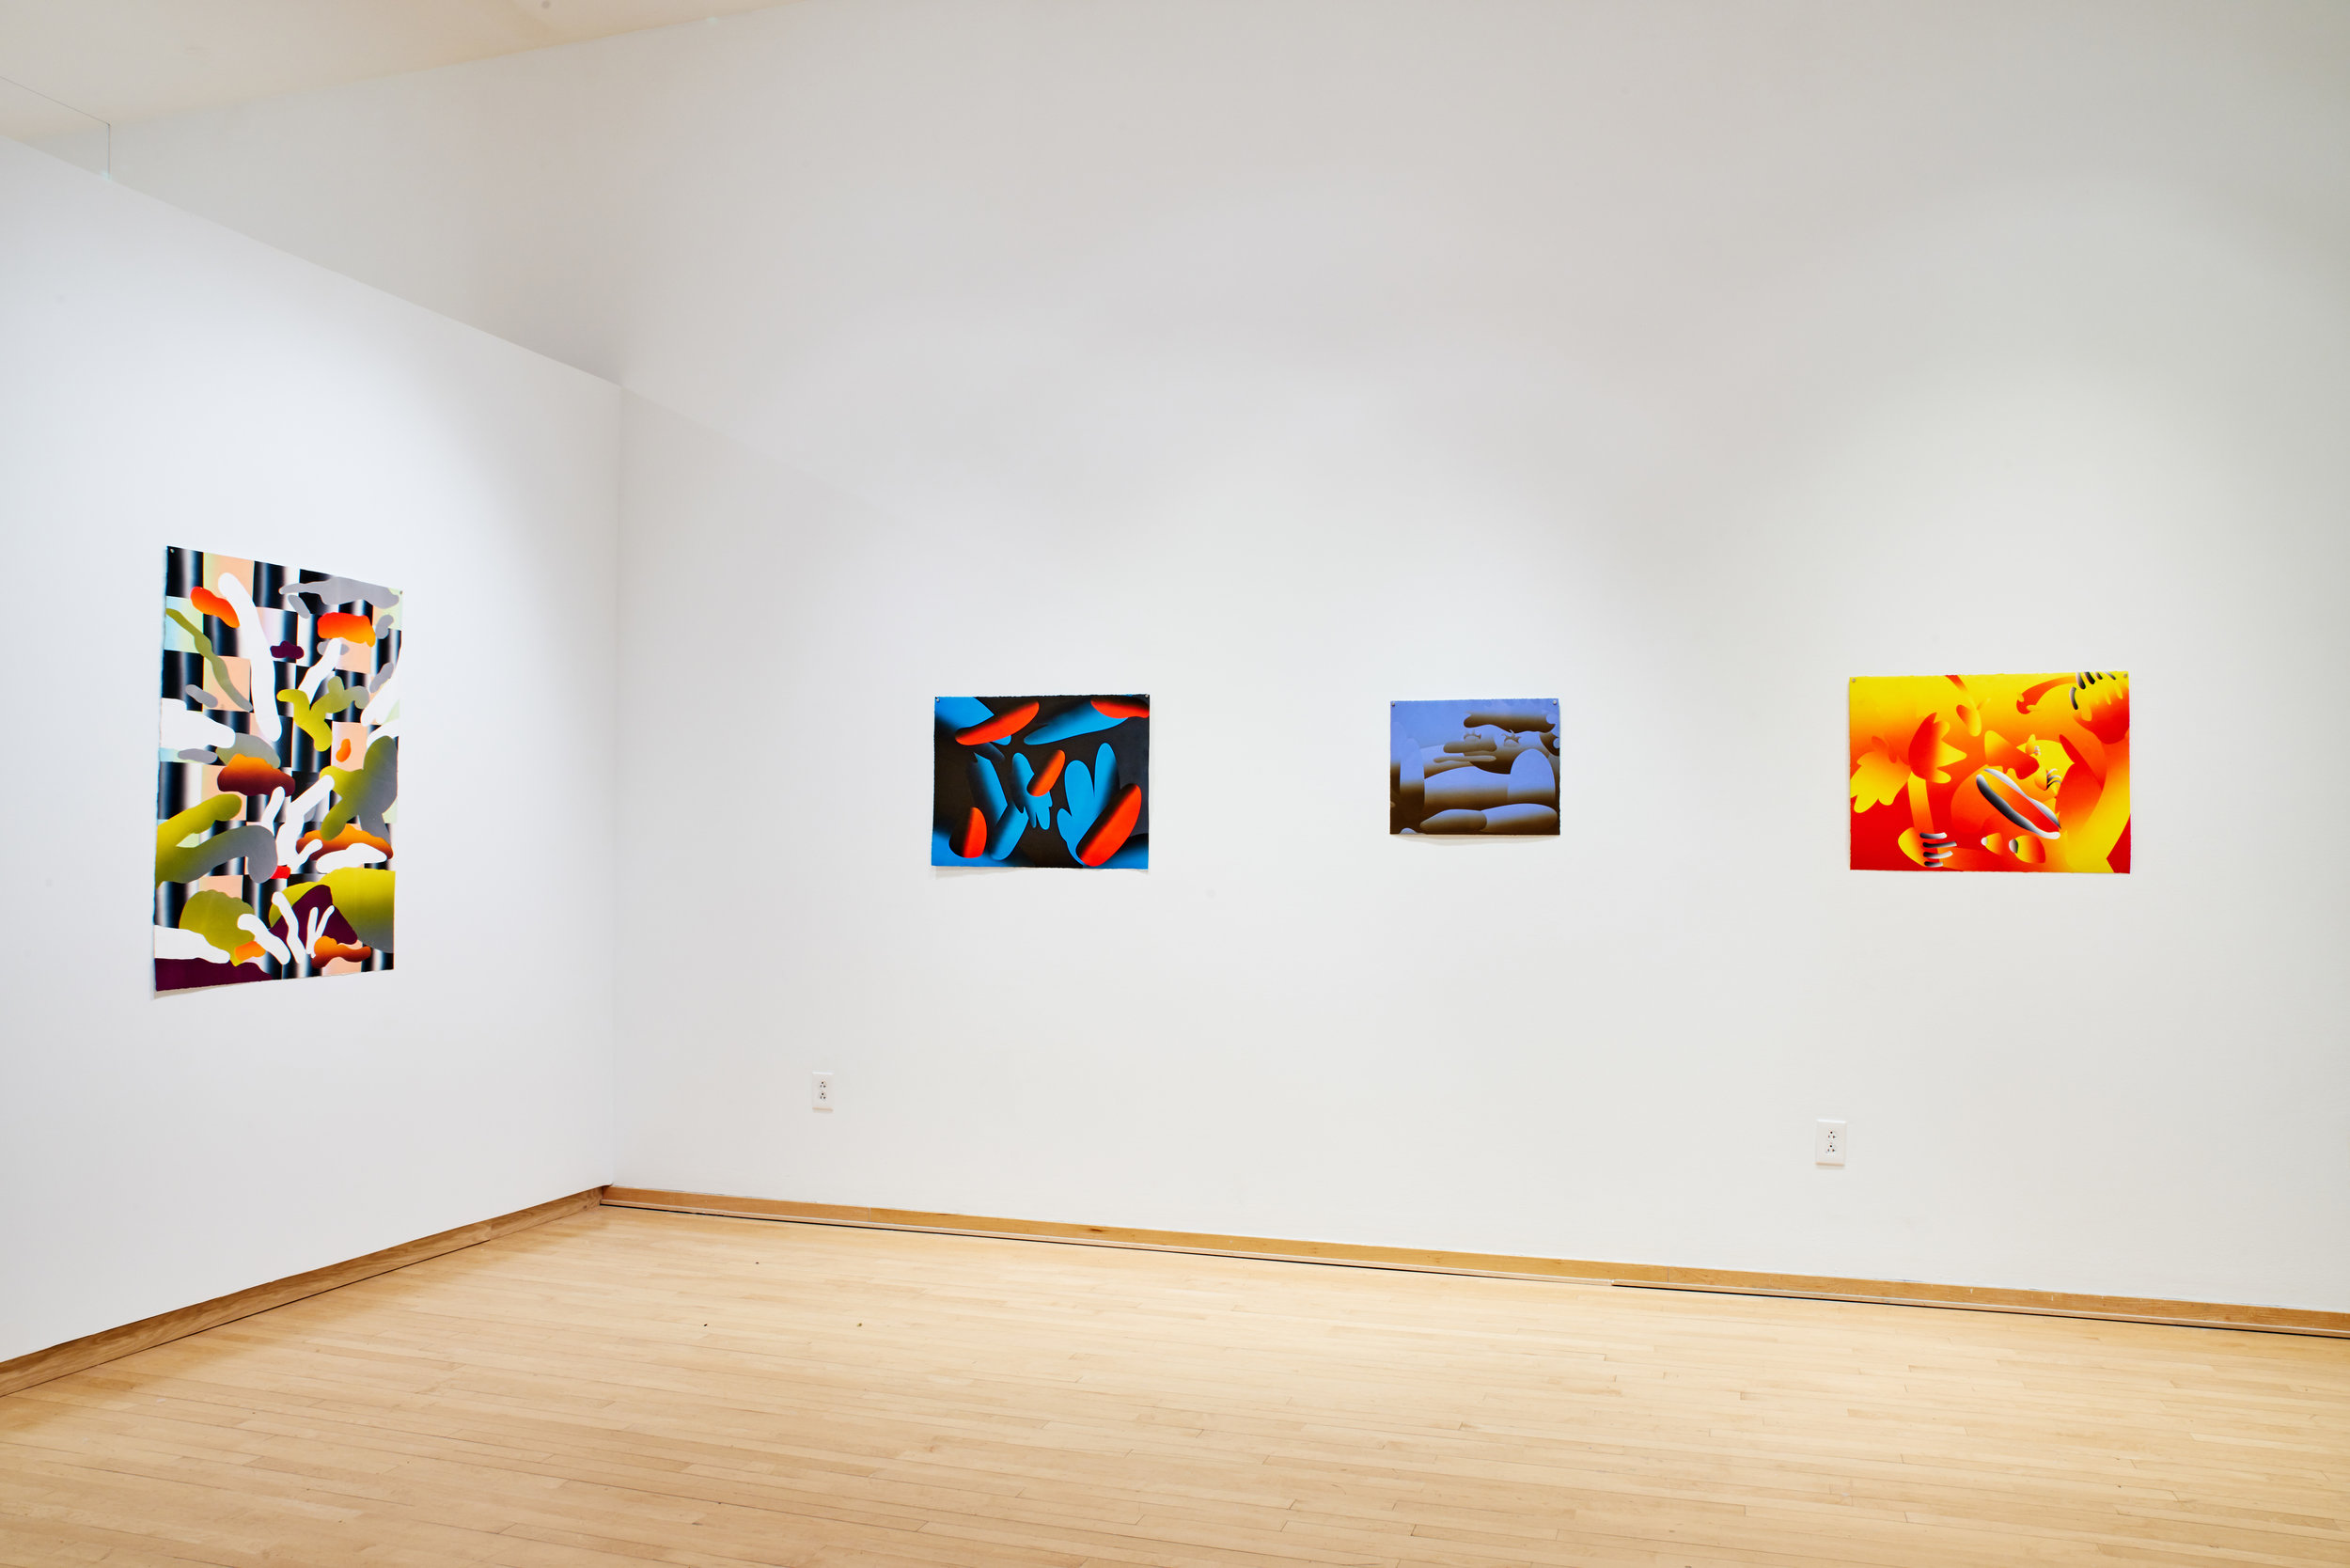 Work Title (left to right): Close Ground, Night Bloom, Alone, Eve